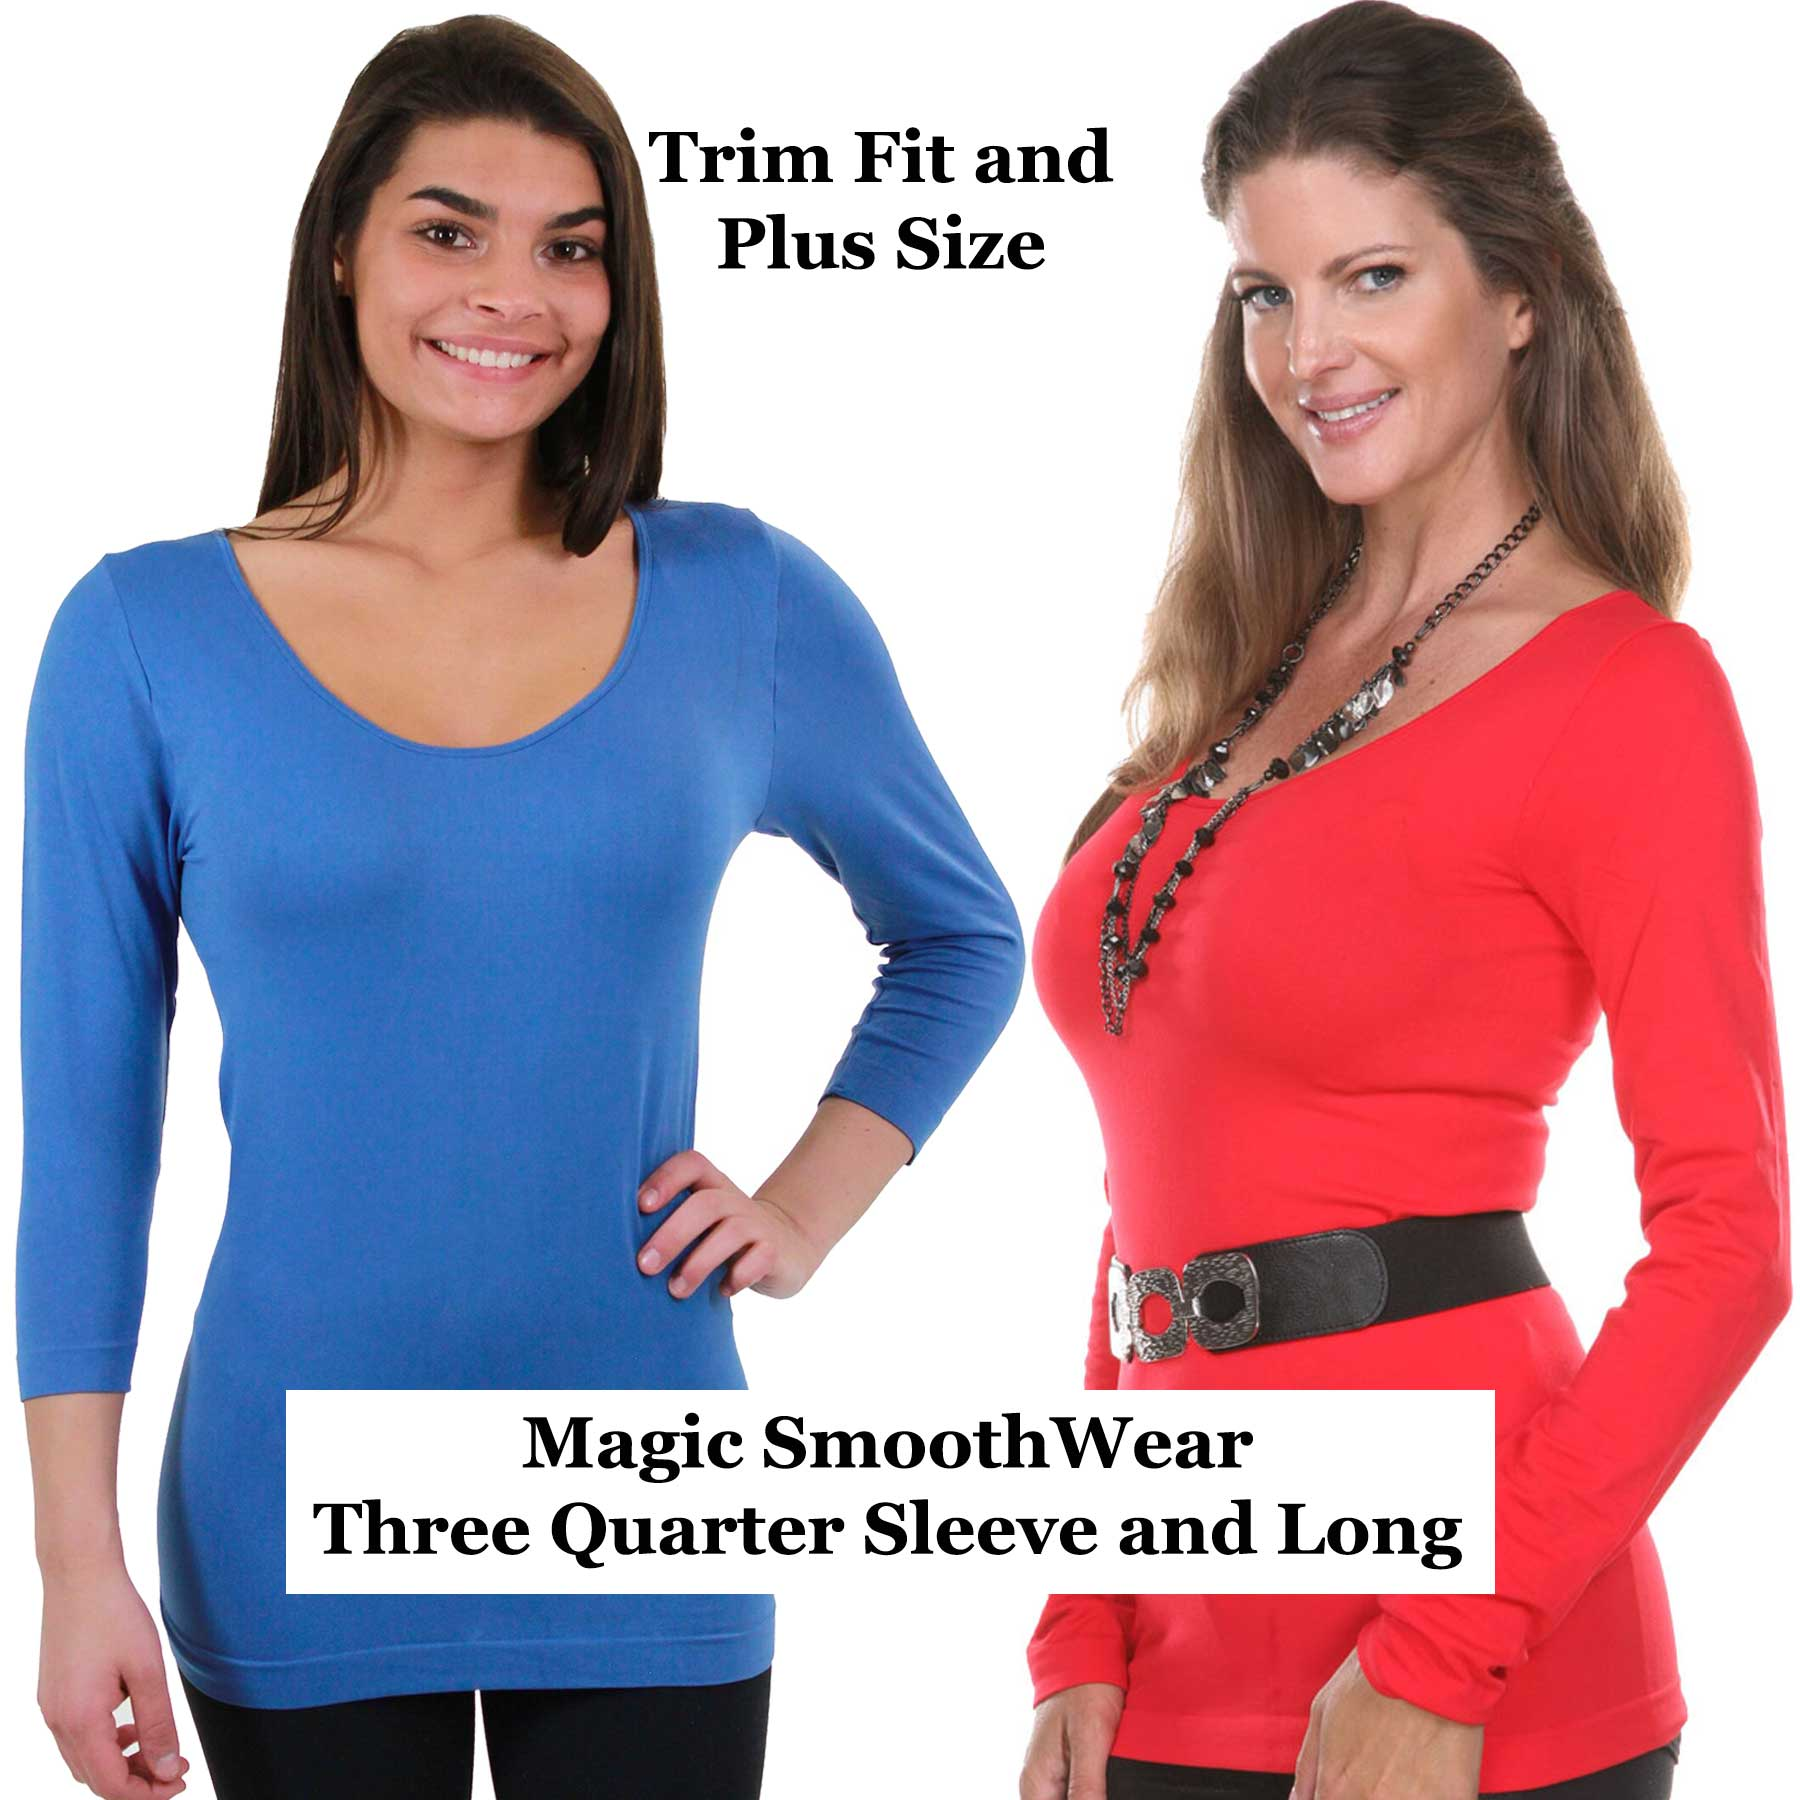 Magic SmoothWear Three Quarter & Long Sleeve